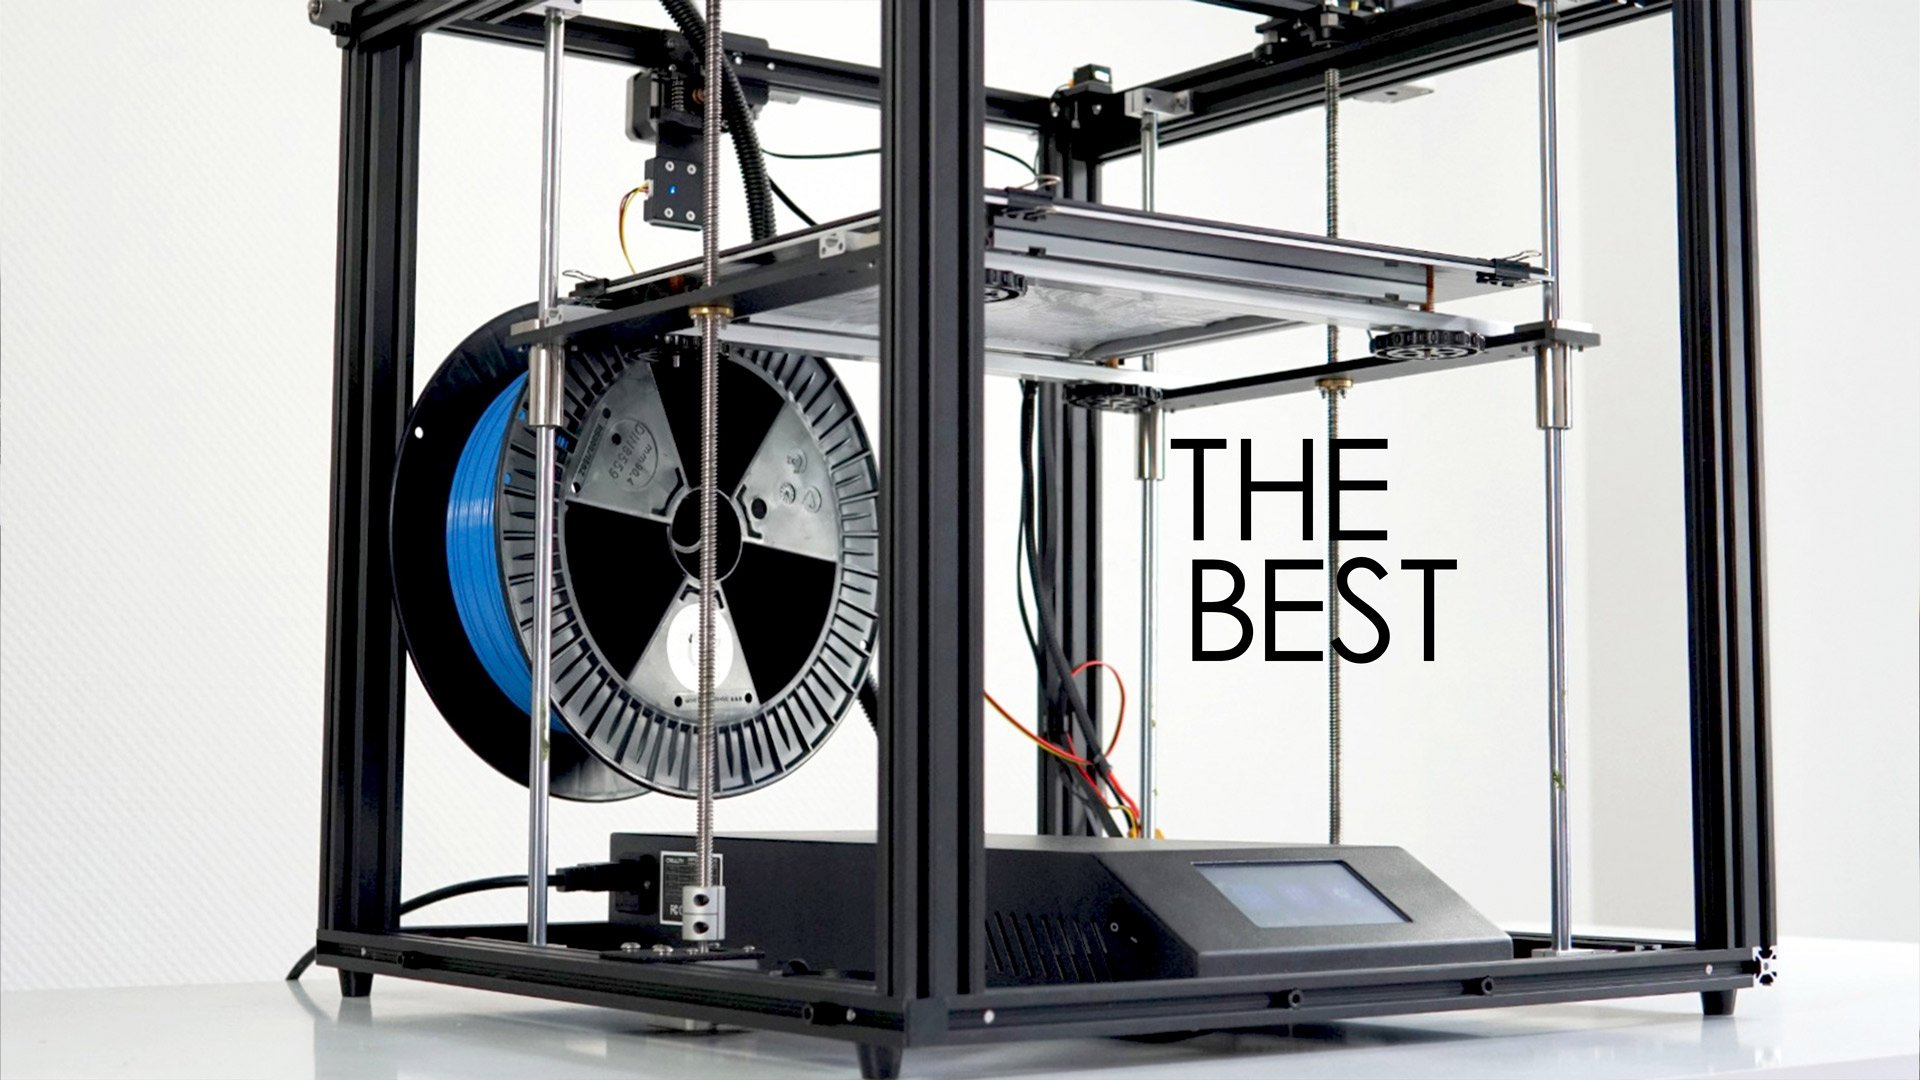 2021 Best Affordable Large-Format 3D Printers | All3DP